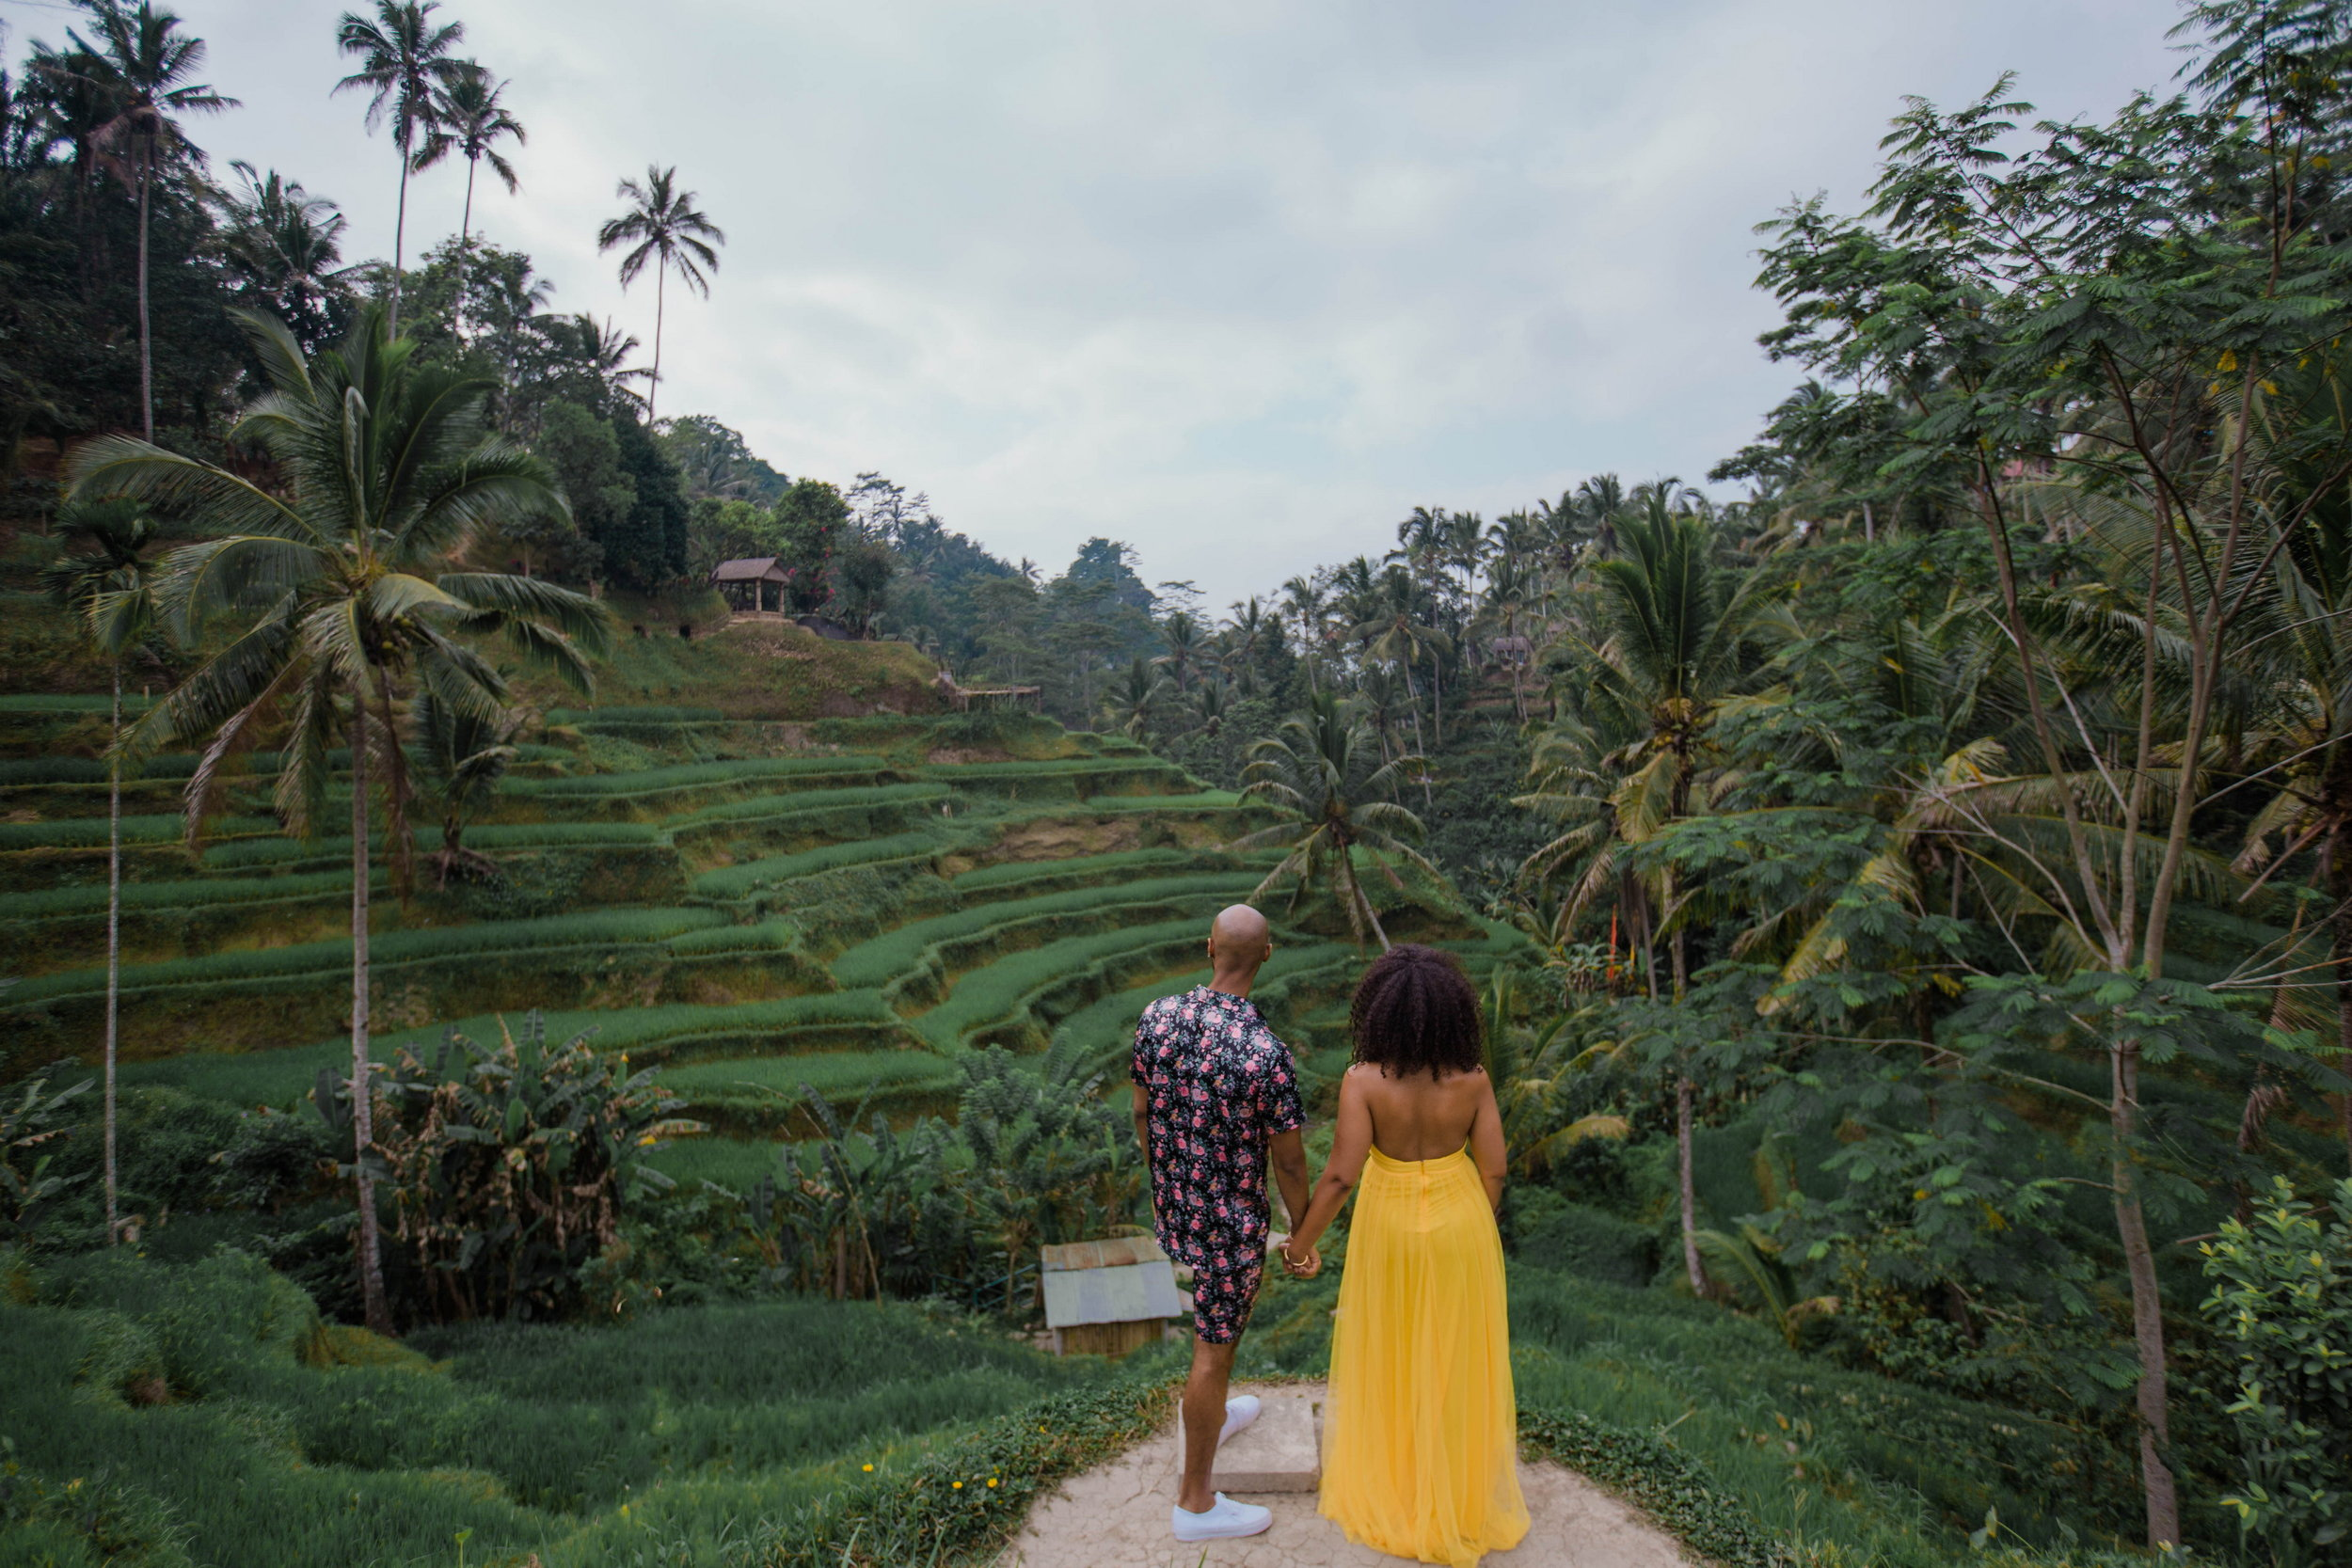 Photo by: Shoot My Travel Photographer  Leandro  in Bali